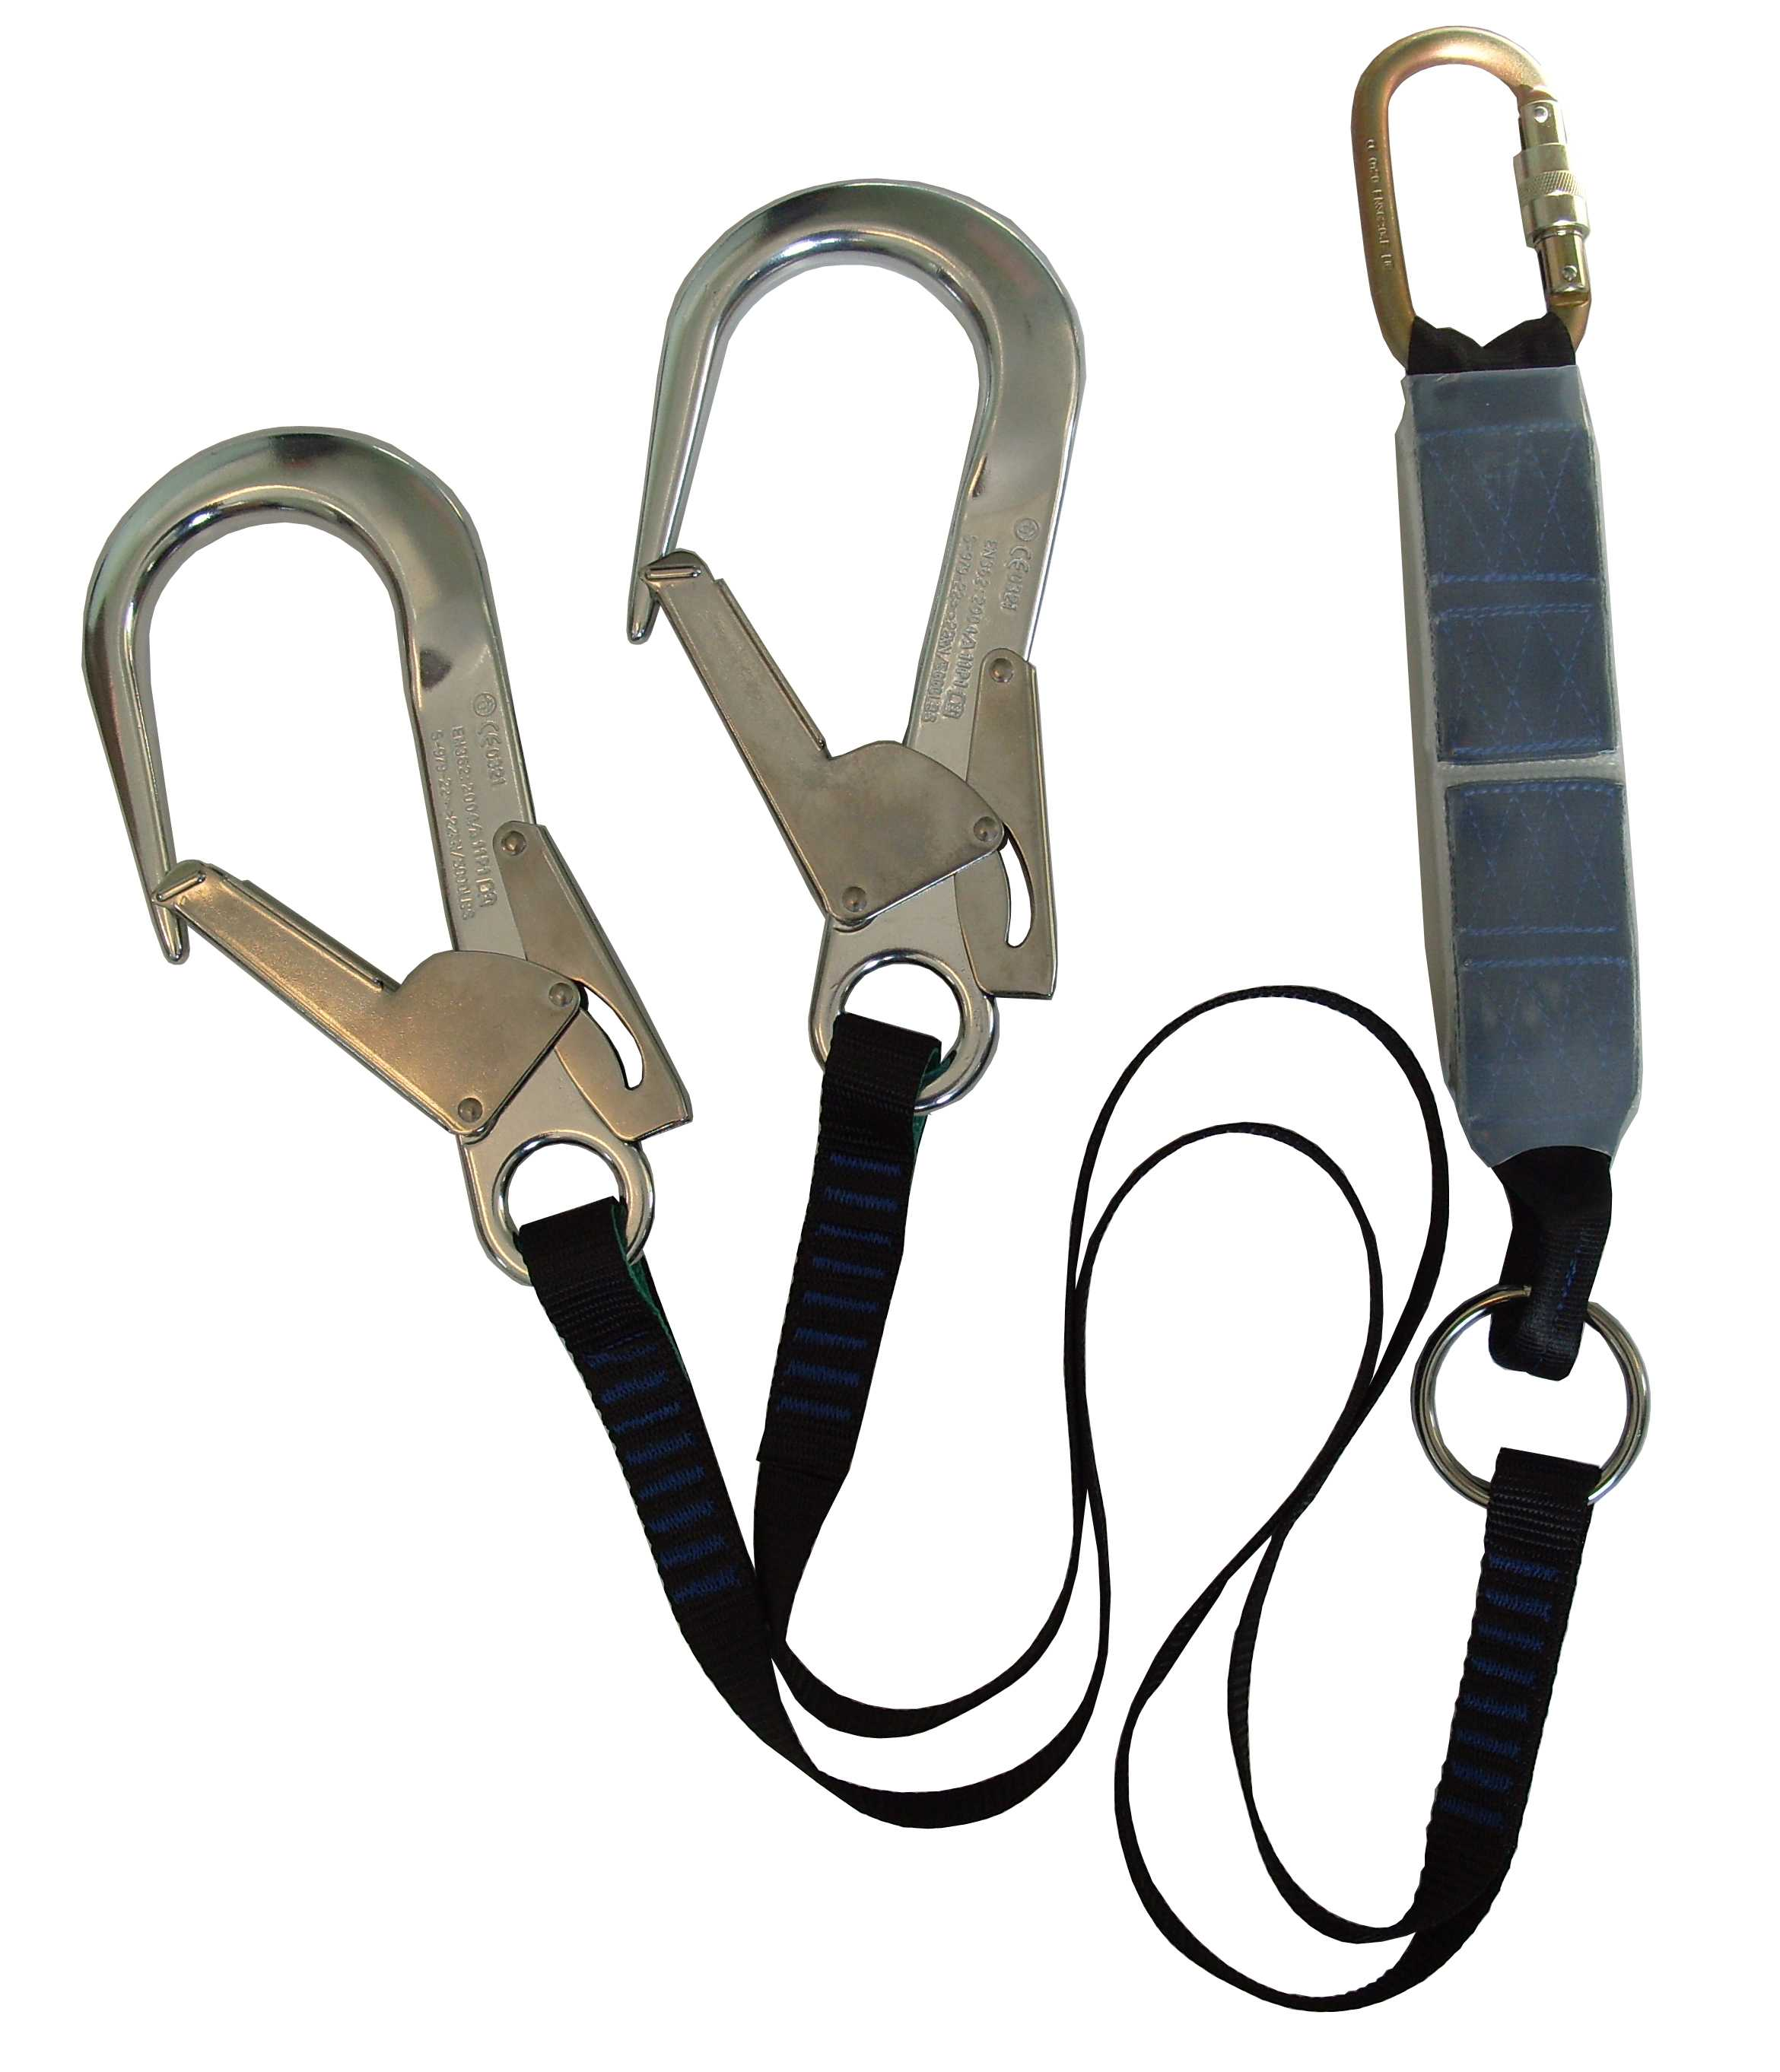 Twin Shock Absorbing Lanyard 1.5m with Scaffold Hook Each End ABLTW1.5SH